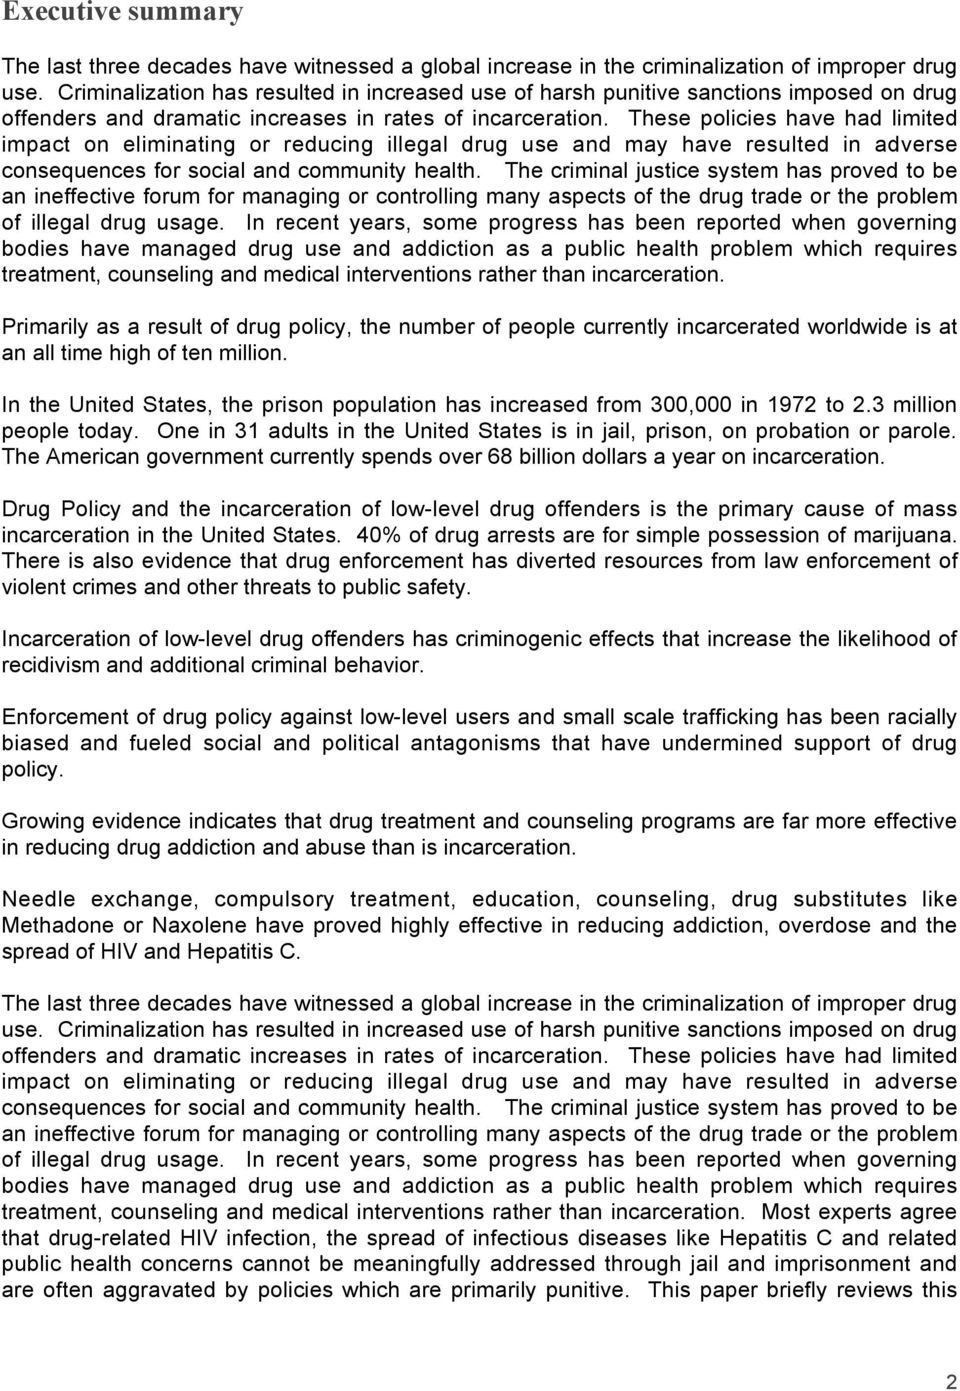 These policies have had limited impact on eliminating or reducing illegal drug use and may have resulted in adverse consequences for social and community health.